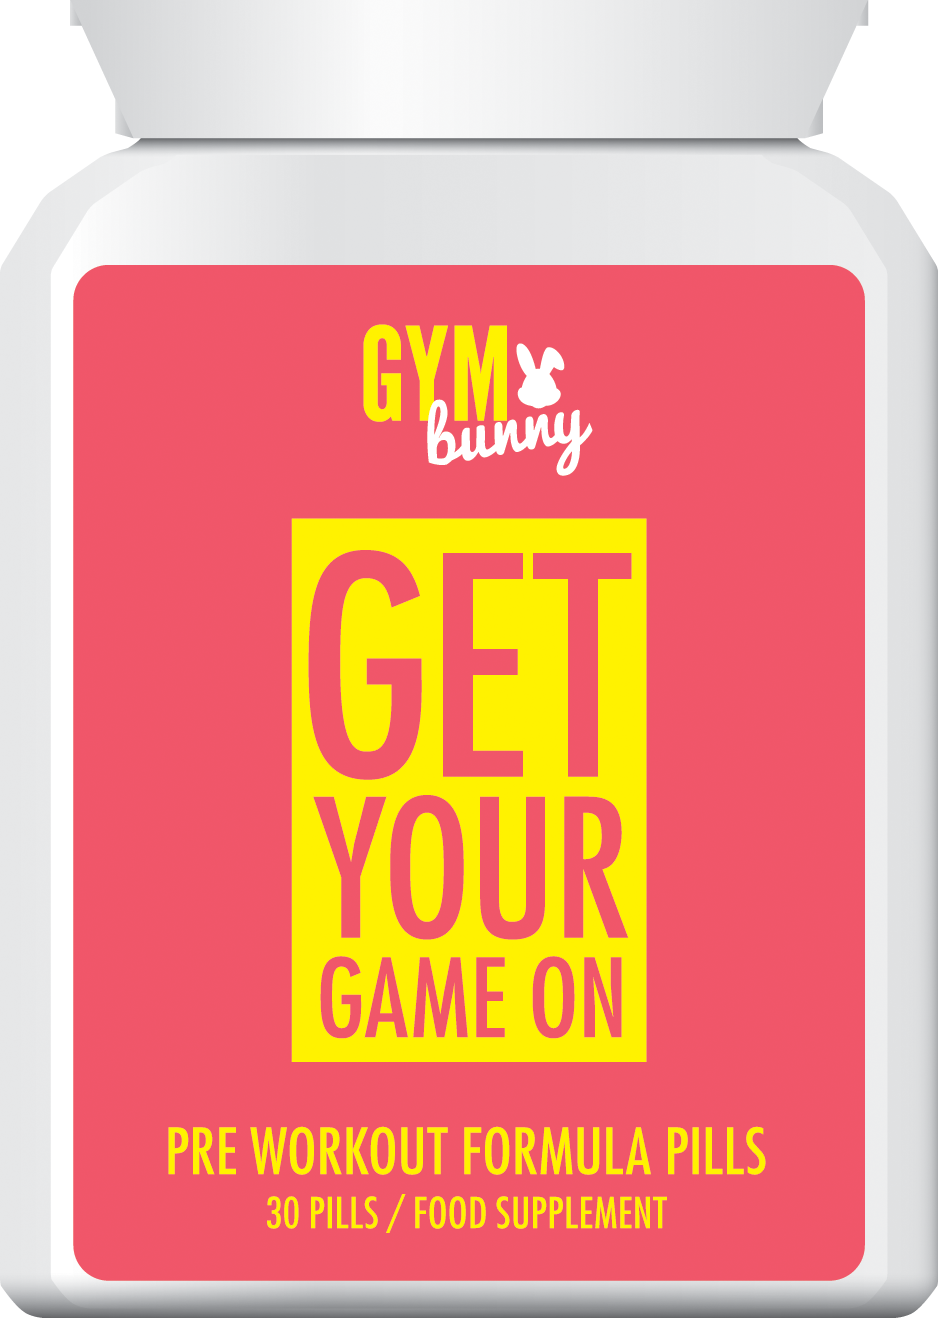 GYM BUNNY GET YOUR GAME ON PRE WORKOUT FORMULA PILLS